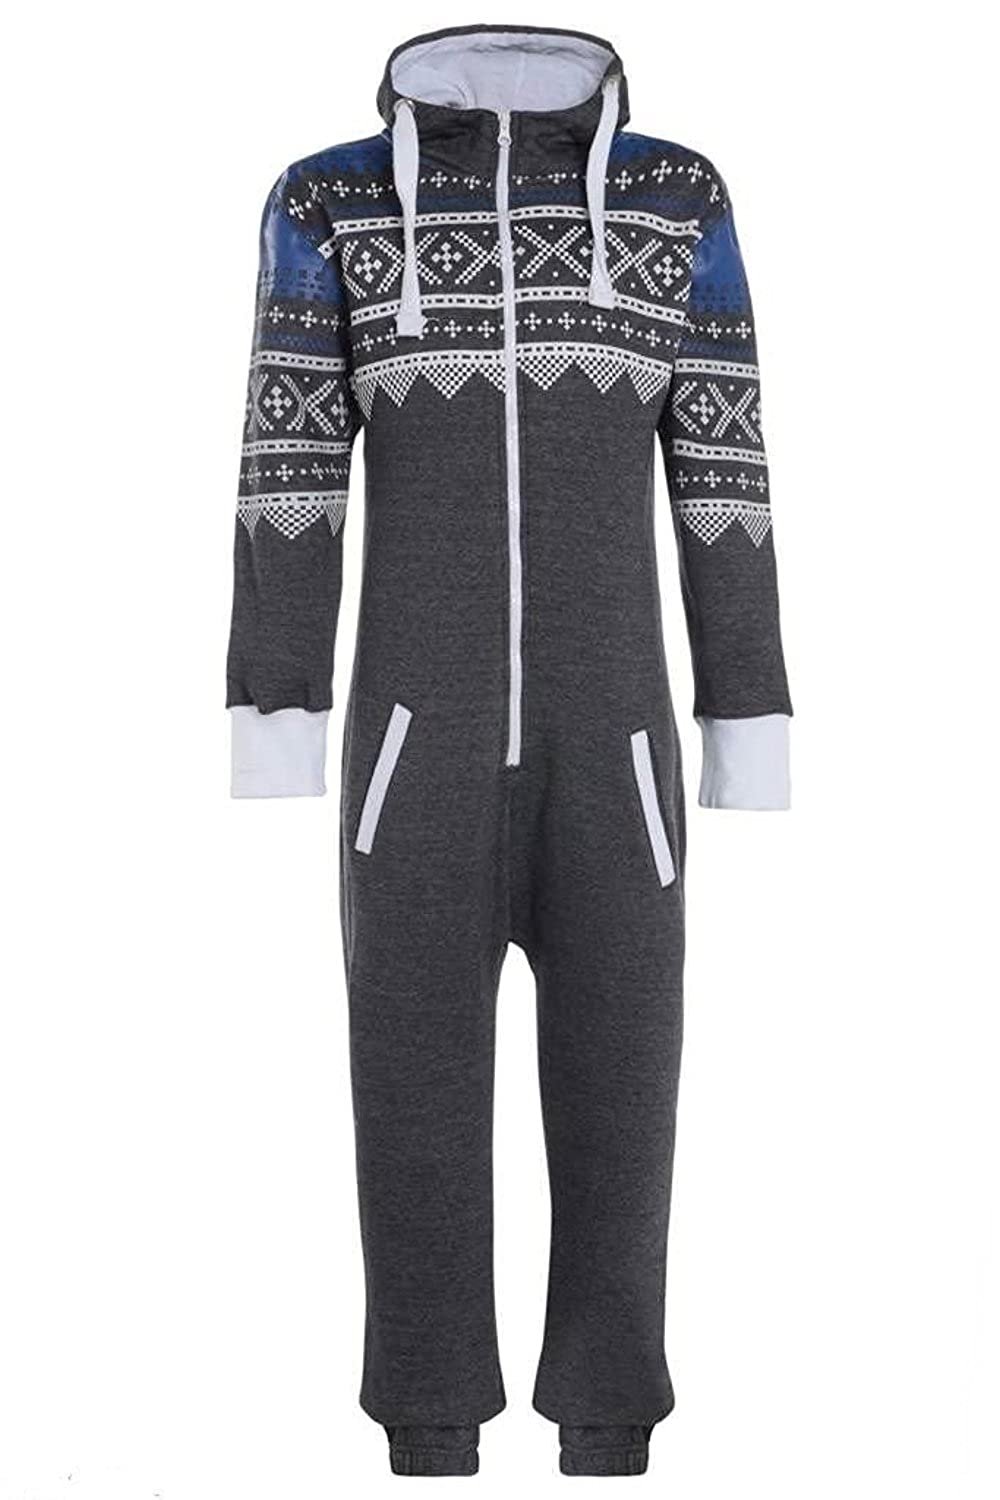 Unisex Mens Aztec Army Print Onesie Zip Up All In One Hooded Jumpsuit S-XL X-Large, Charcoal Aztec